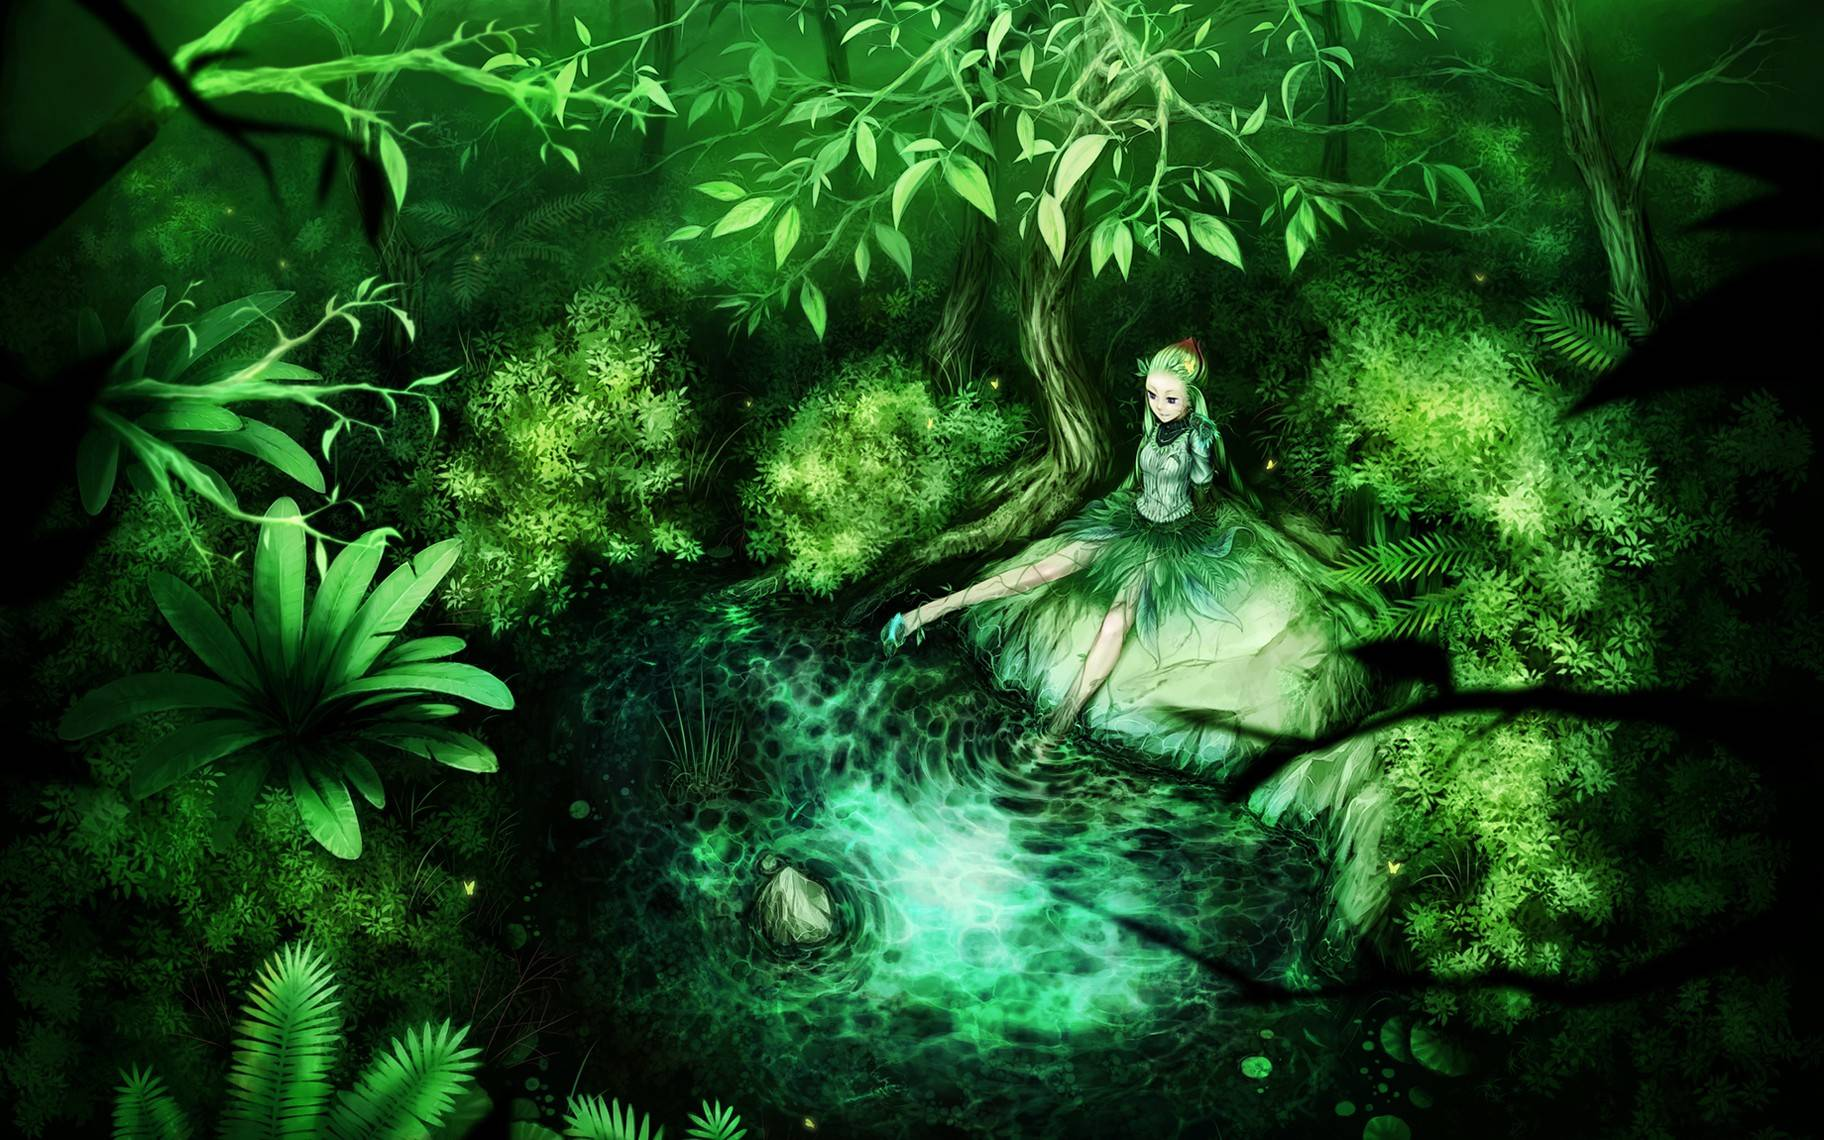 stuffpoint anime anime manga images wallpapers green forest fairy 1824x1140